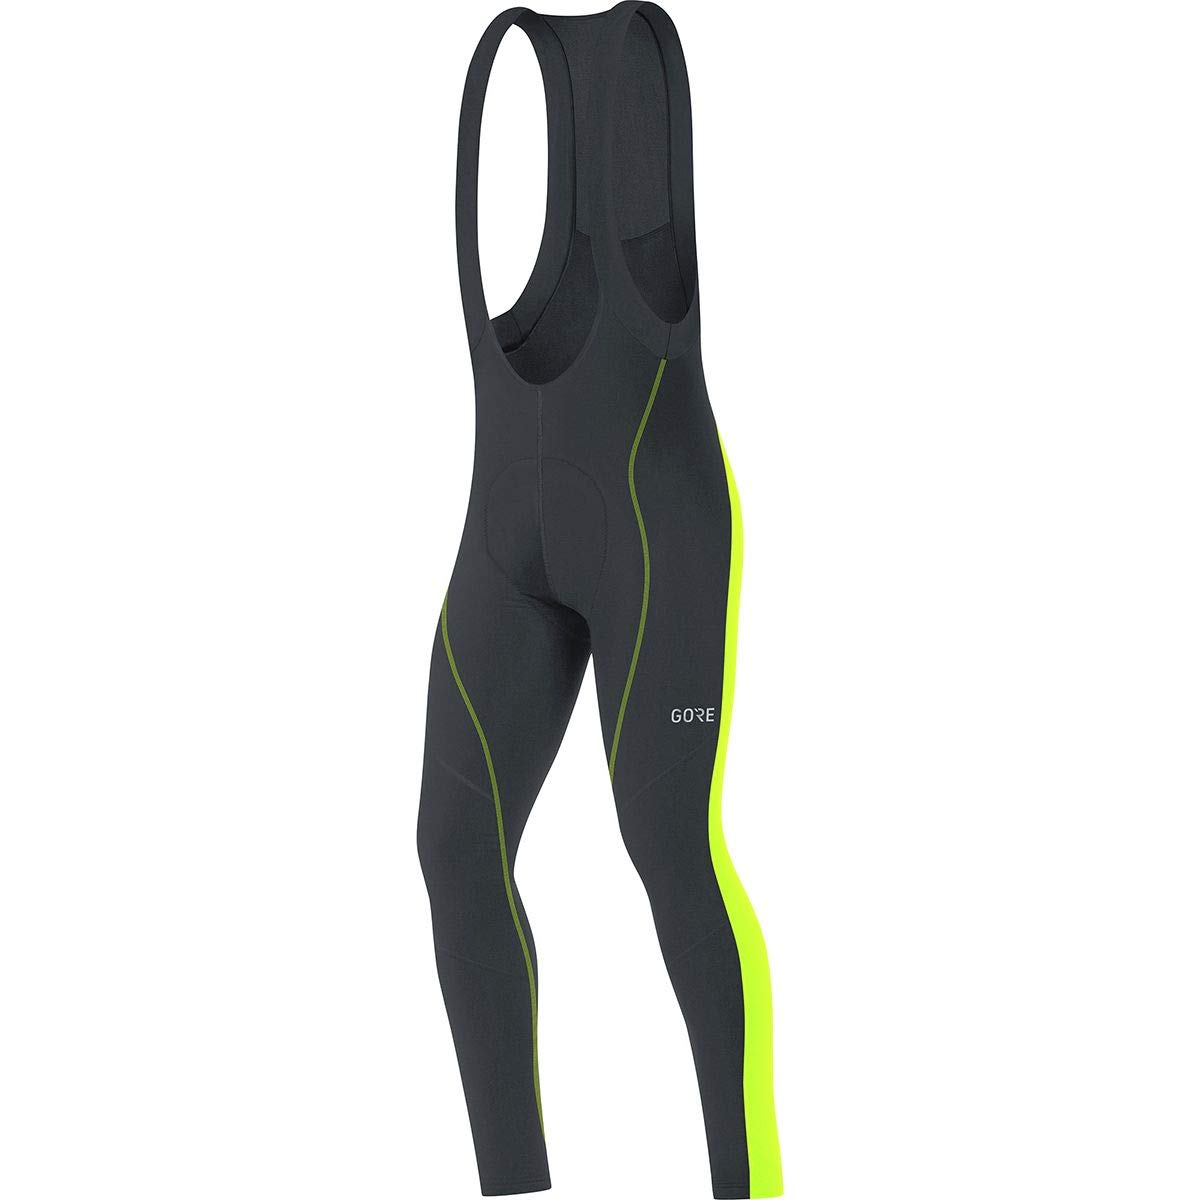 GORE WEAR Men's Breathable, Long Cycling bib Tights, with seat Insert, C3 Thermo Bib Tights+, M, Black/Neon-Yellow, 100326